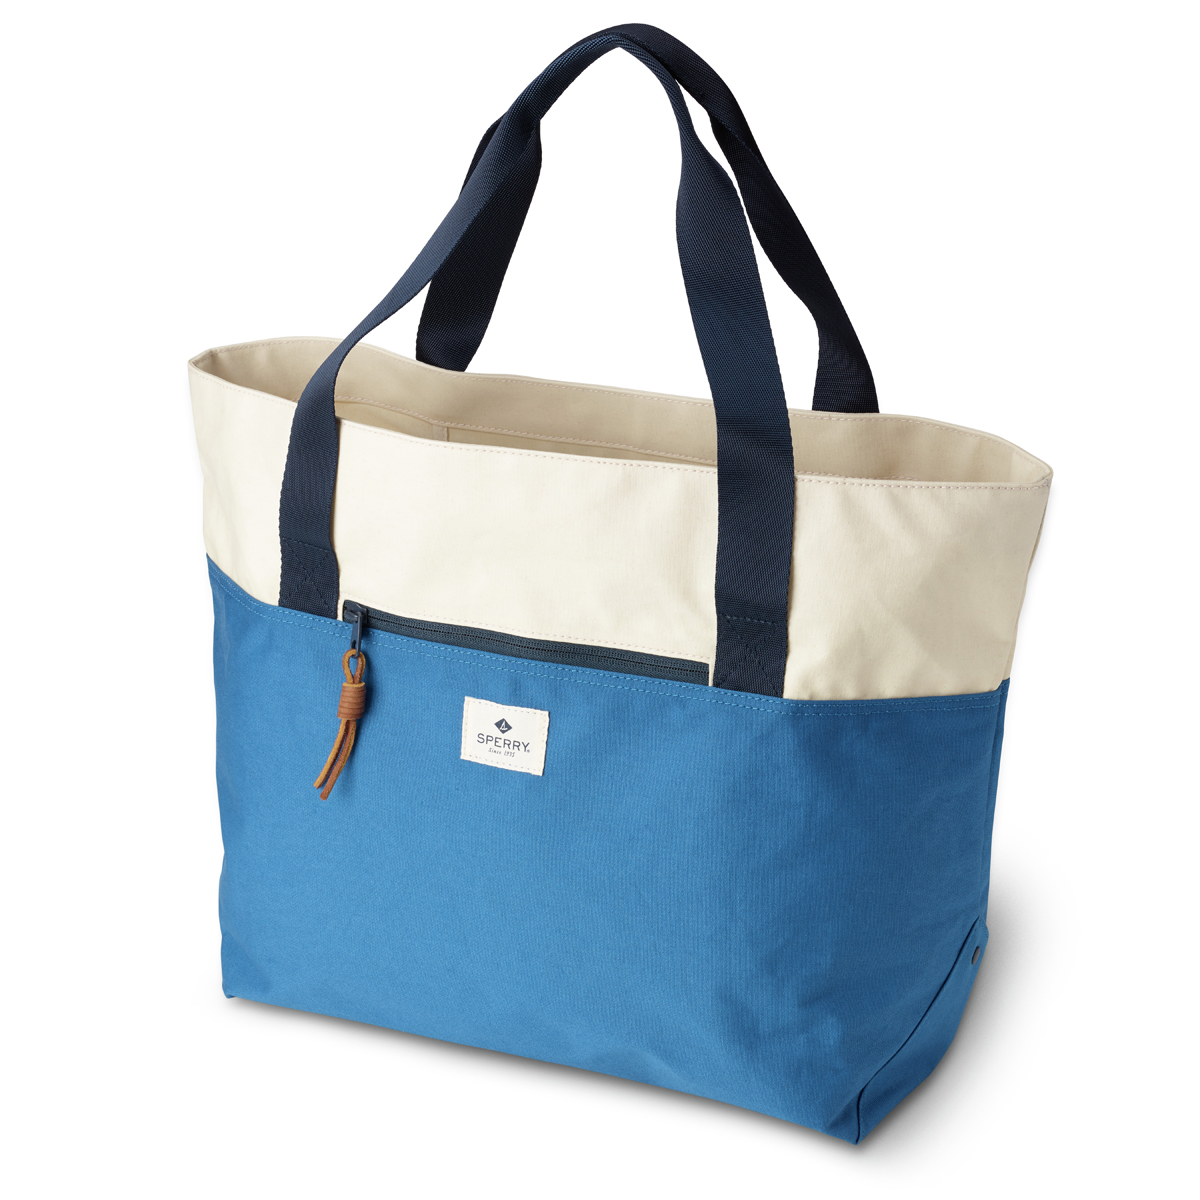 SPERRY TOTE (STS31890)